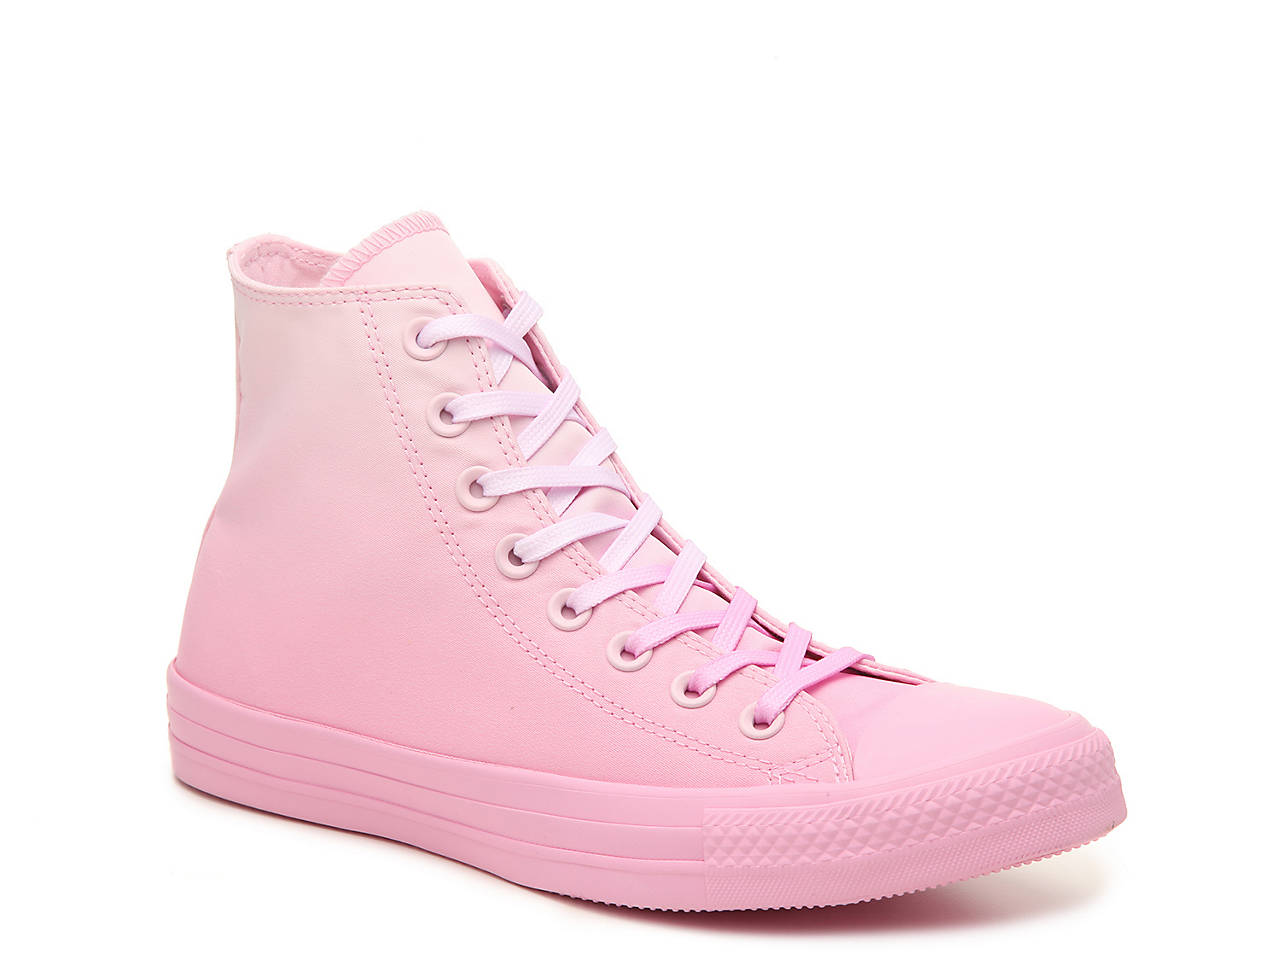 8c25a0ef82e4 Converse Chuck Taylor All Star Dip Dye High-Top Sneaker - Women s ...